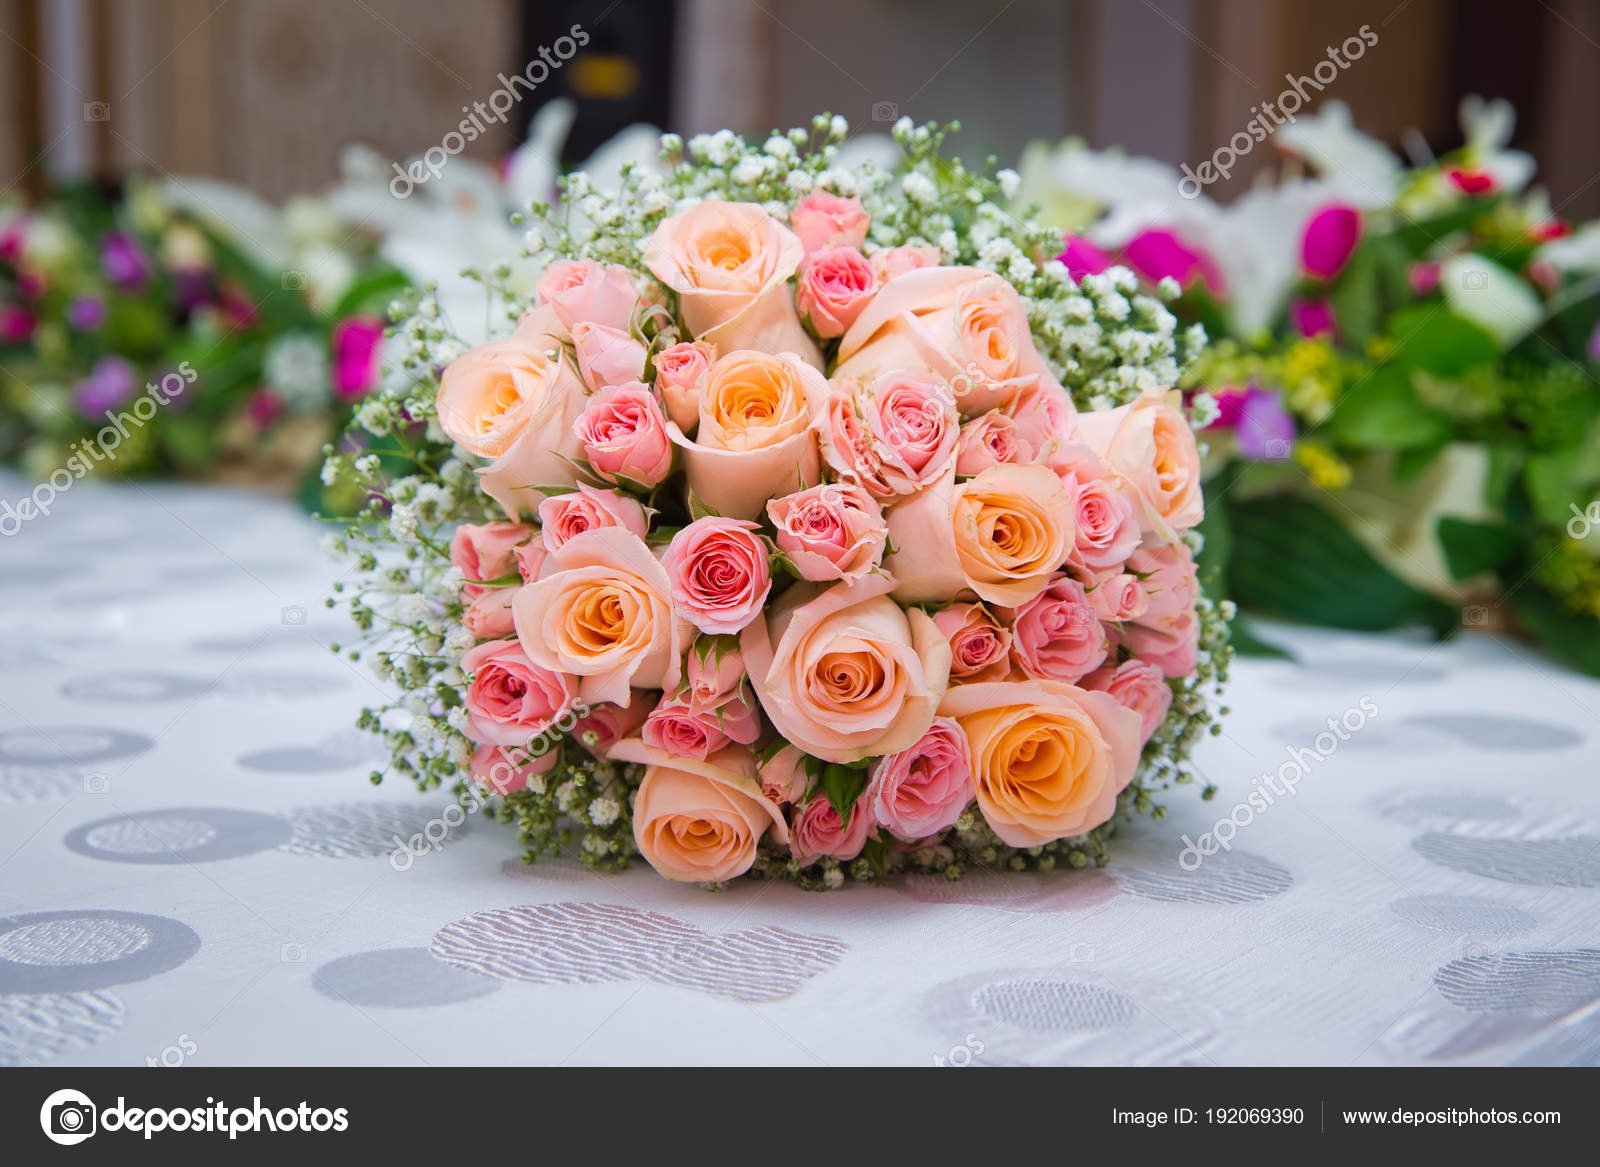 Bridal Bouquet With Orange And Pink Roses Of Different Size With Handle On White Background Romantic Wedding Bouquet With Beautiful Flowers Stock Photo C Fotoqraf Tk Mail Ru 192069390